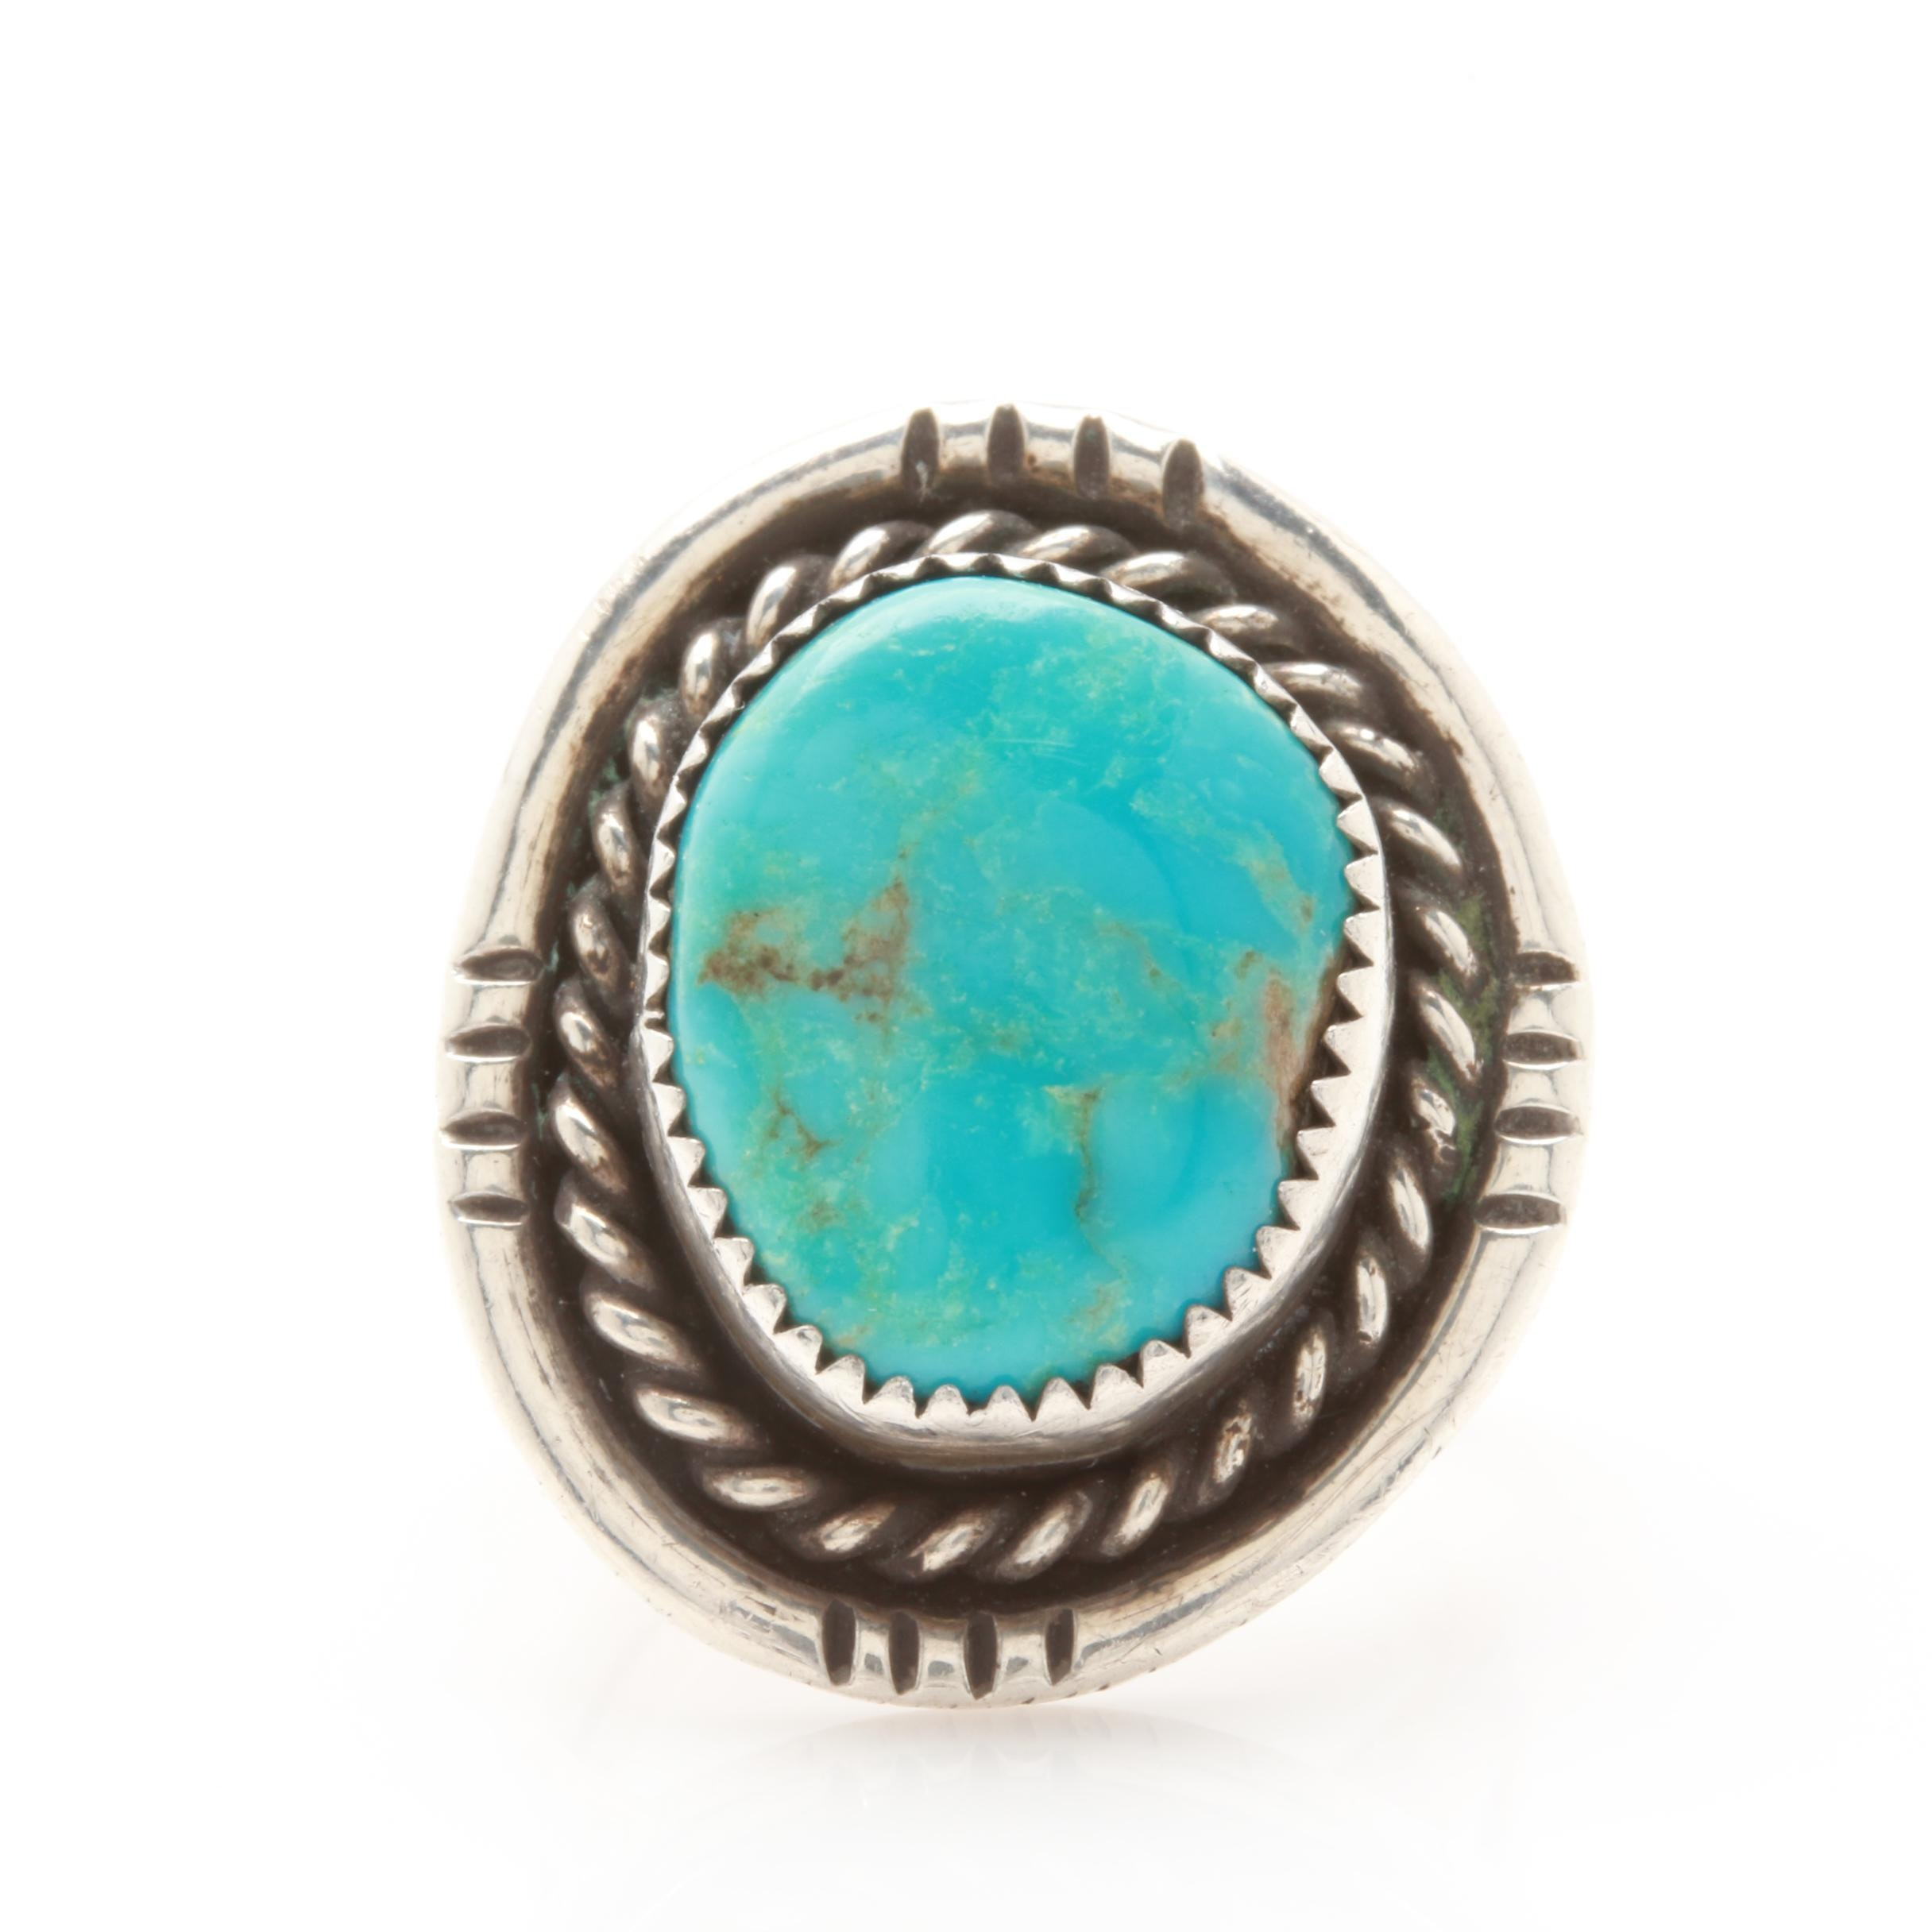 Larry Sandoval Navajo Diné Sterling Silver Turquoise Ring